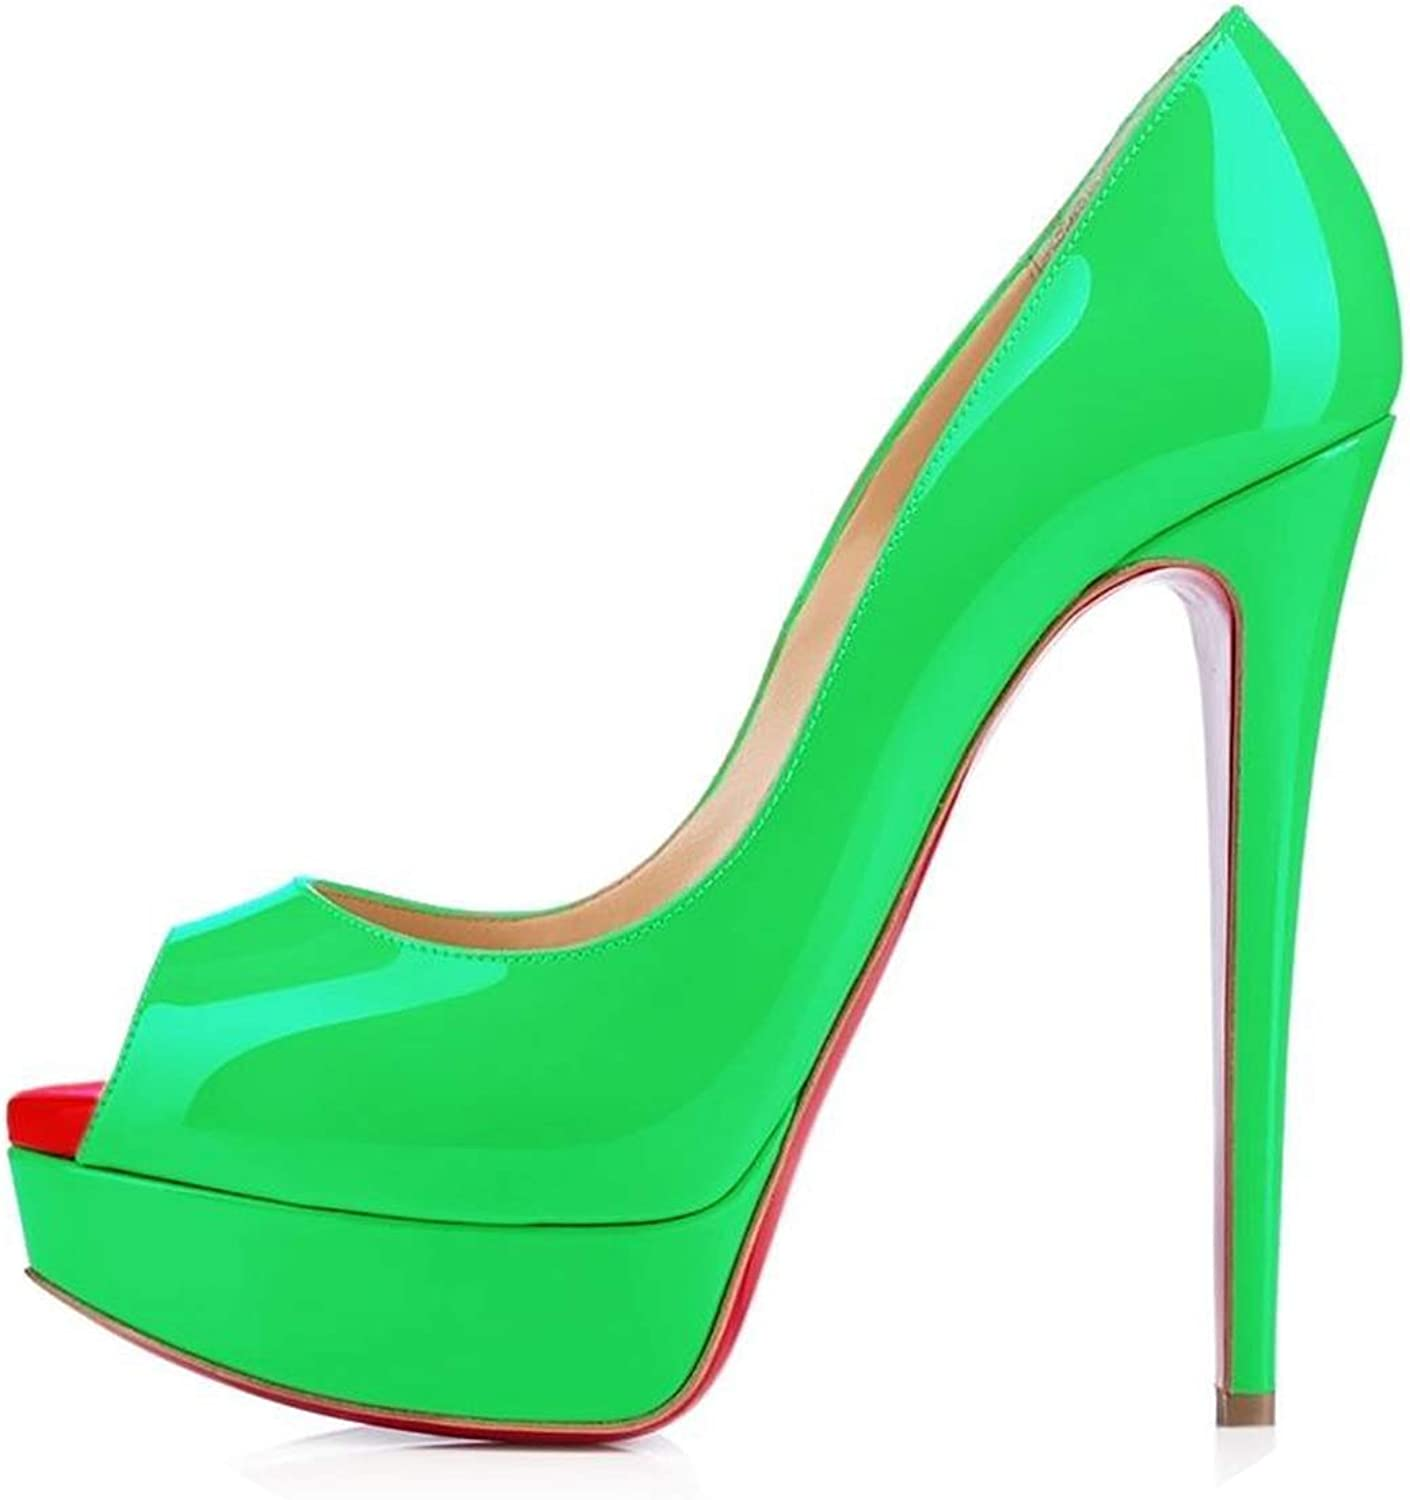 LAIGEDANZI Womens Pumps Leather Wedges Platform Stiletto High Heels Open Toe Sexy Party shoes,Green,6